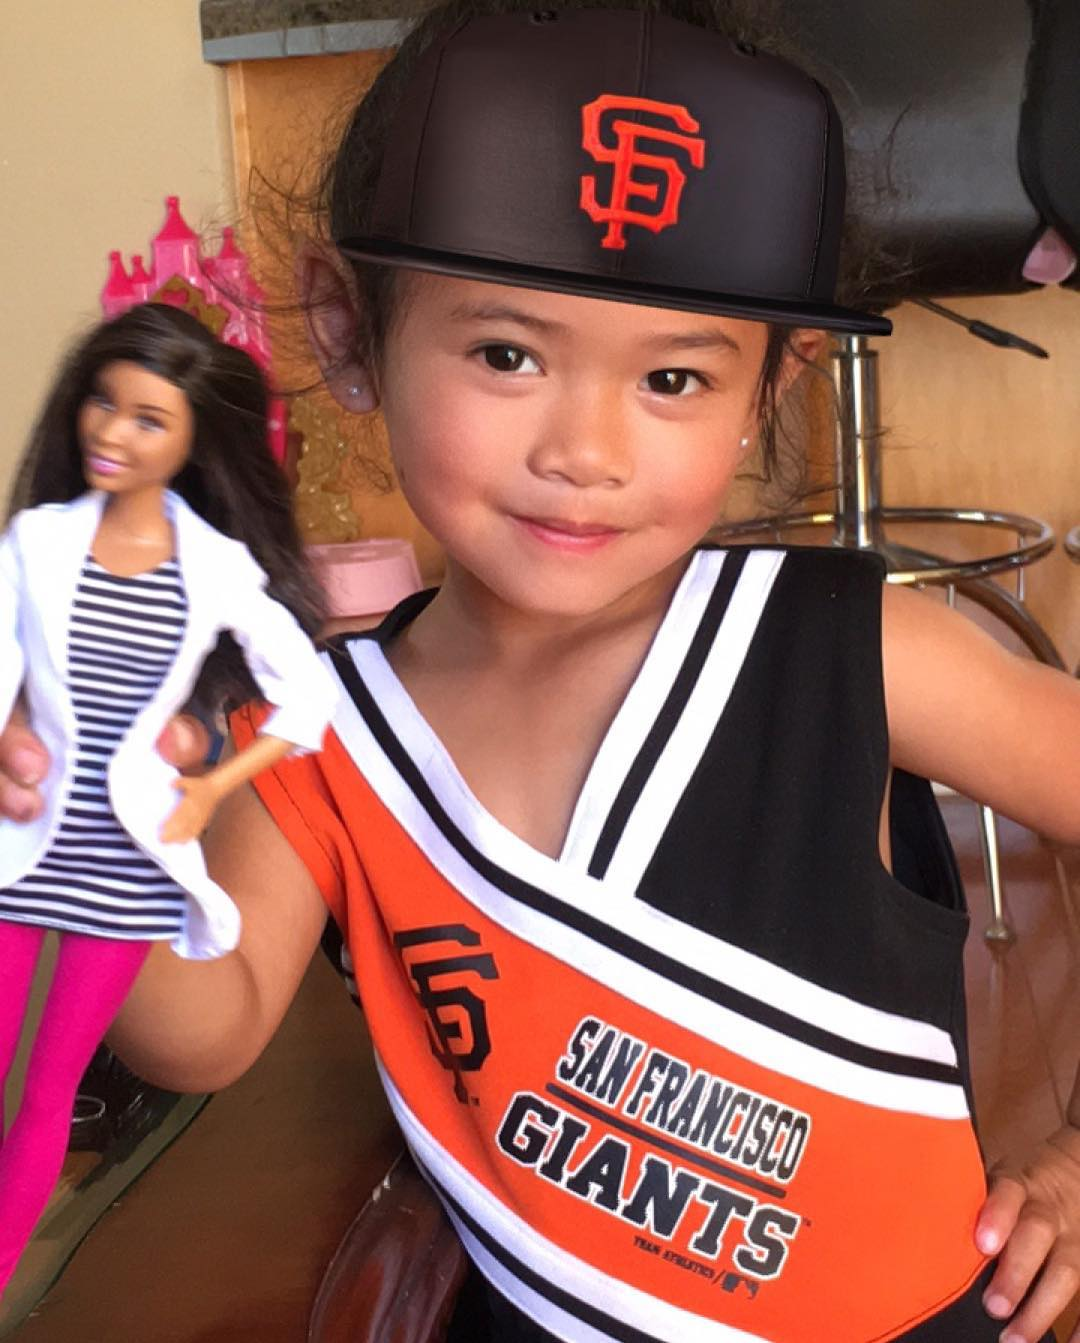 """<div class=""""meta image-caption""""><div class=""""origin-logo origin-image none""""><span>none</span></div><span class=""""caption-text"""">ABC7 viewers are showing off their San Francisco Giants fan pride. Share yours by tagging them #abc7now! (Photo submitted to KGO-TV by @jordanticzon/Instagram)</span></div>"""